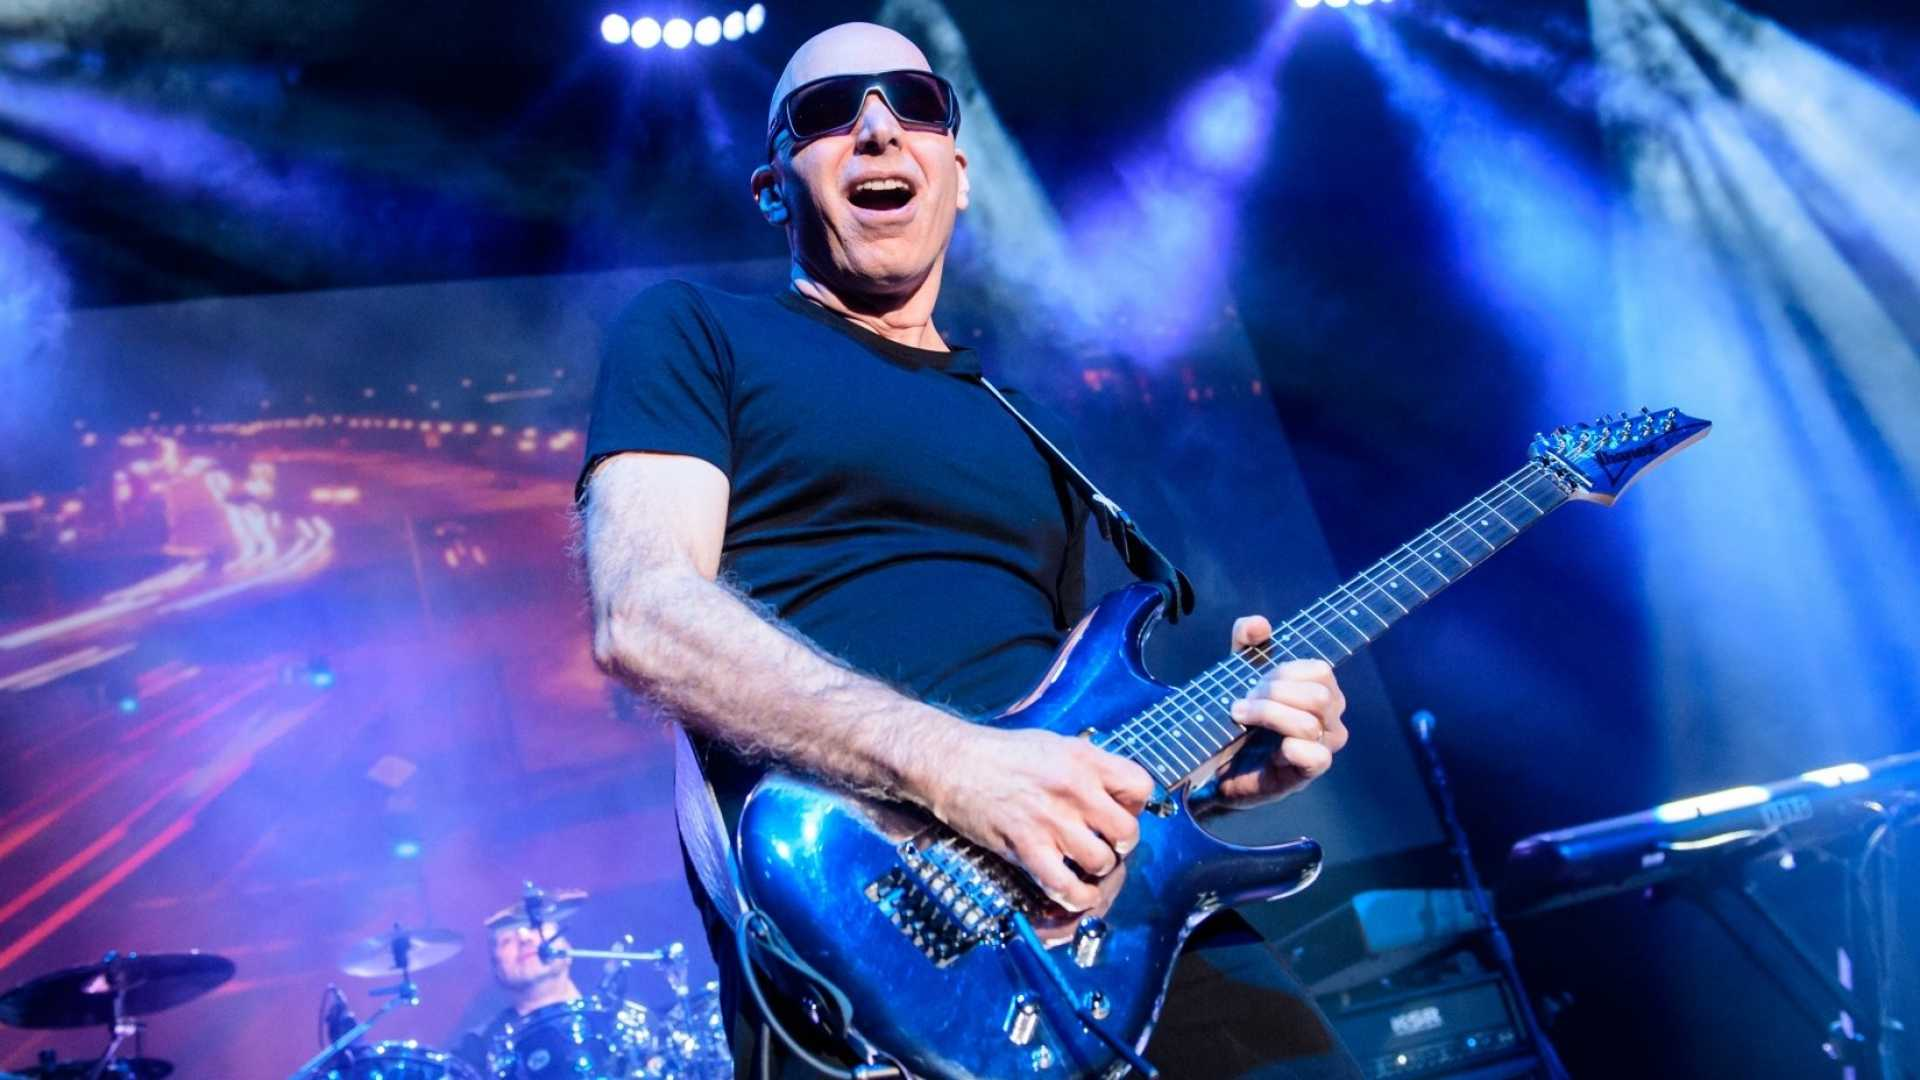 Joe Satriani: Turn Good Into Great (Without Starting Over)